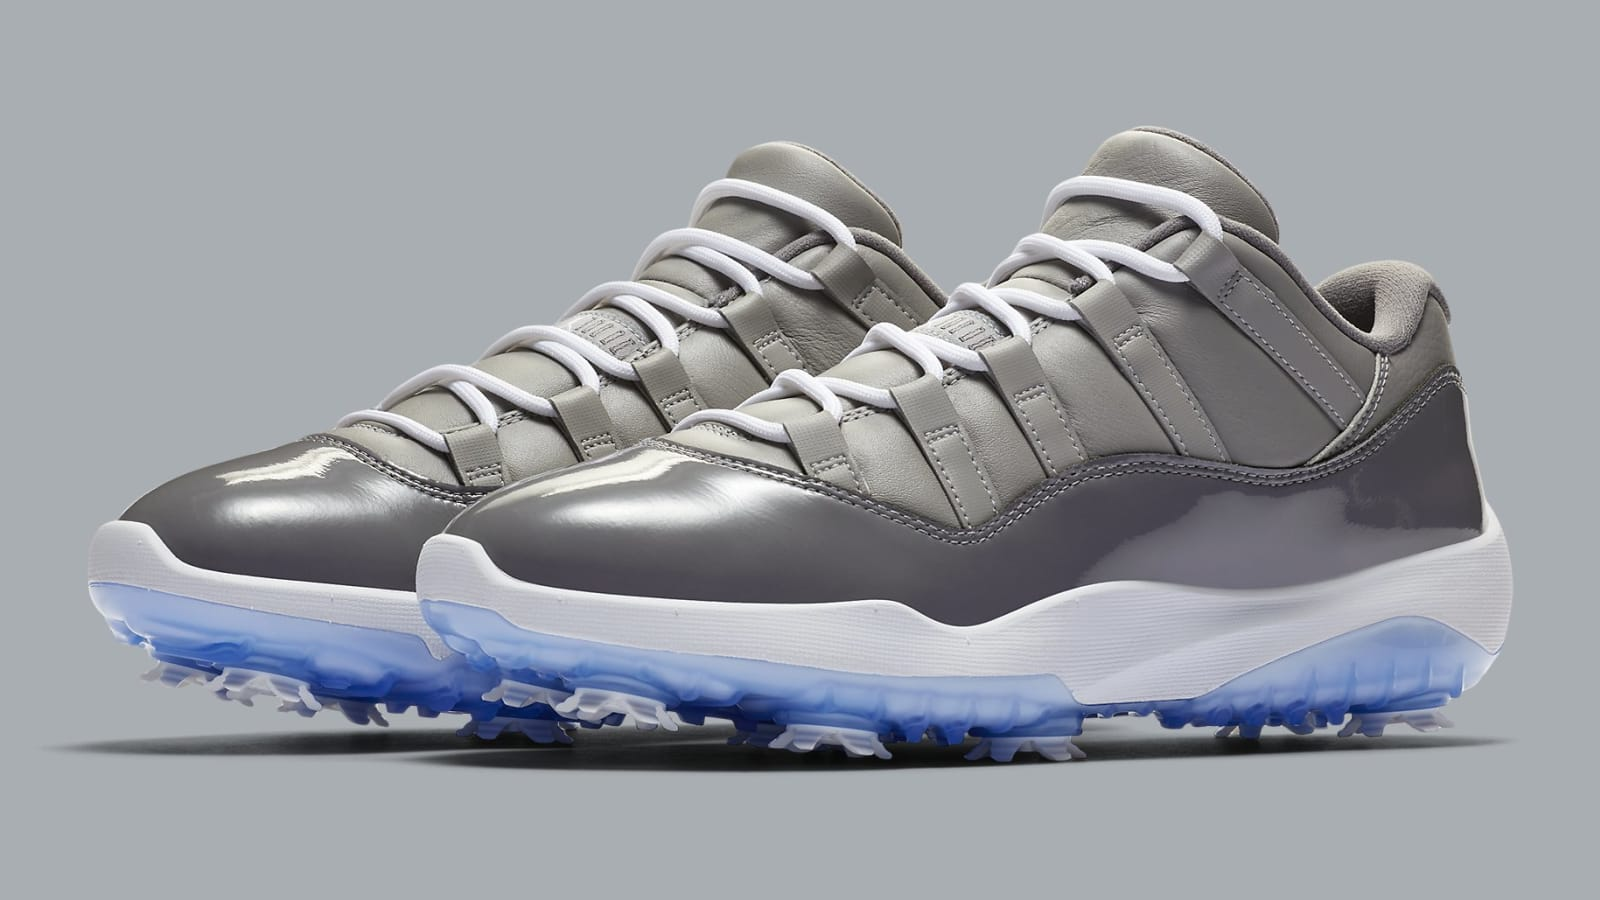 Air Jordan 11 Low Cool Grey Given Golf Show Makeover Details